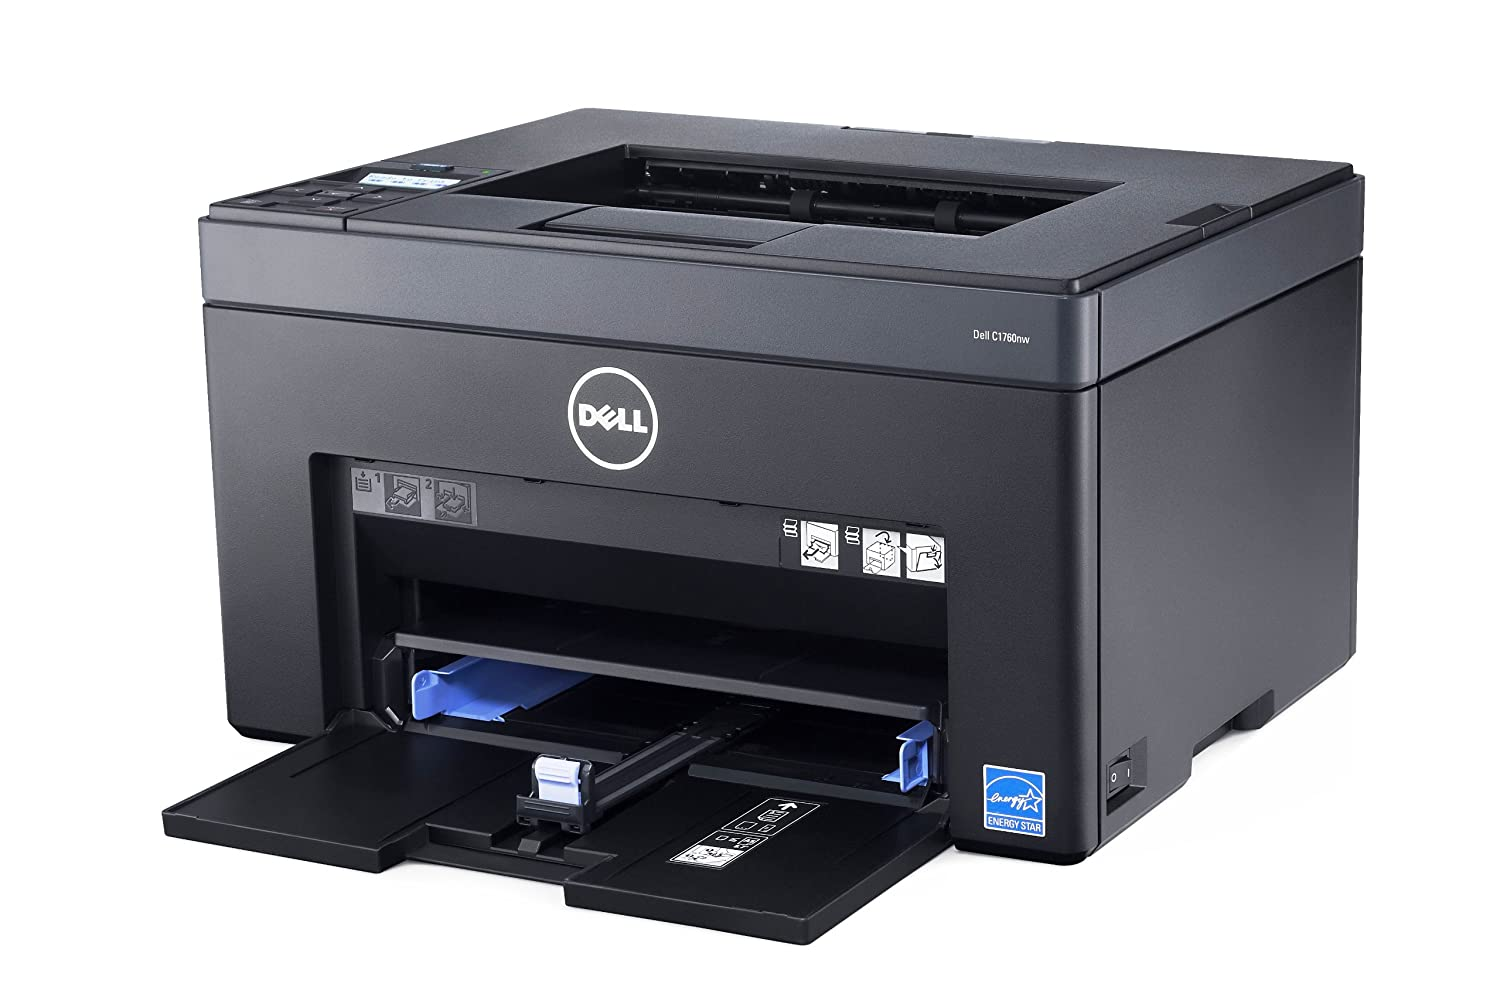 Color printers laser - Dell 210 41094 Color Printer C1760nw Printer Colour Led A4 Legal 600 Dpi Up To 15 Ppm Mono Up To 12 Ppm Colour Capacity 150 Sheets